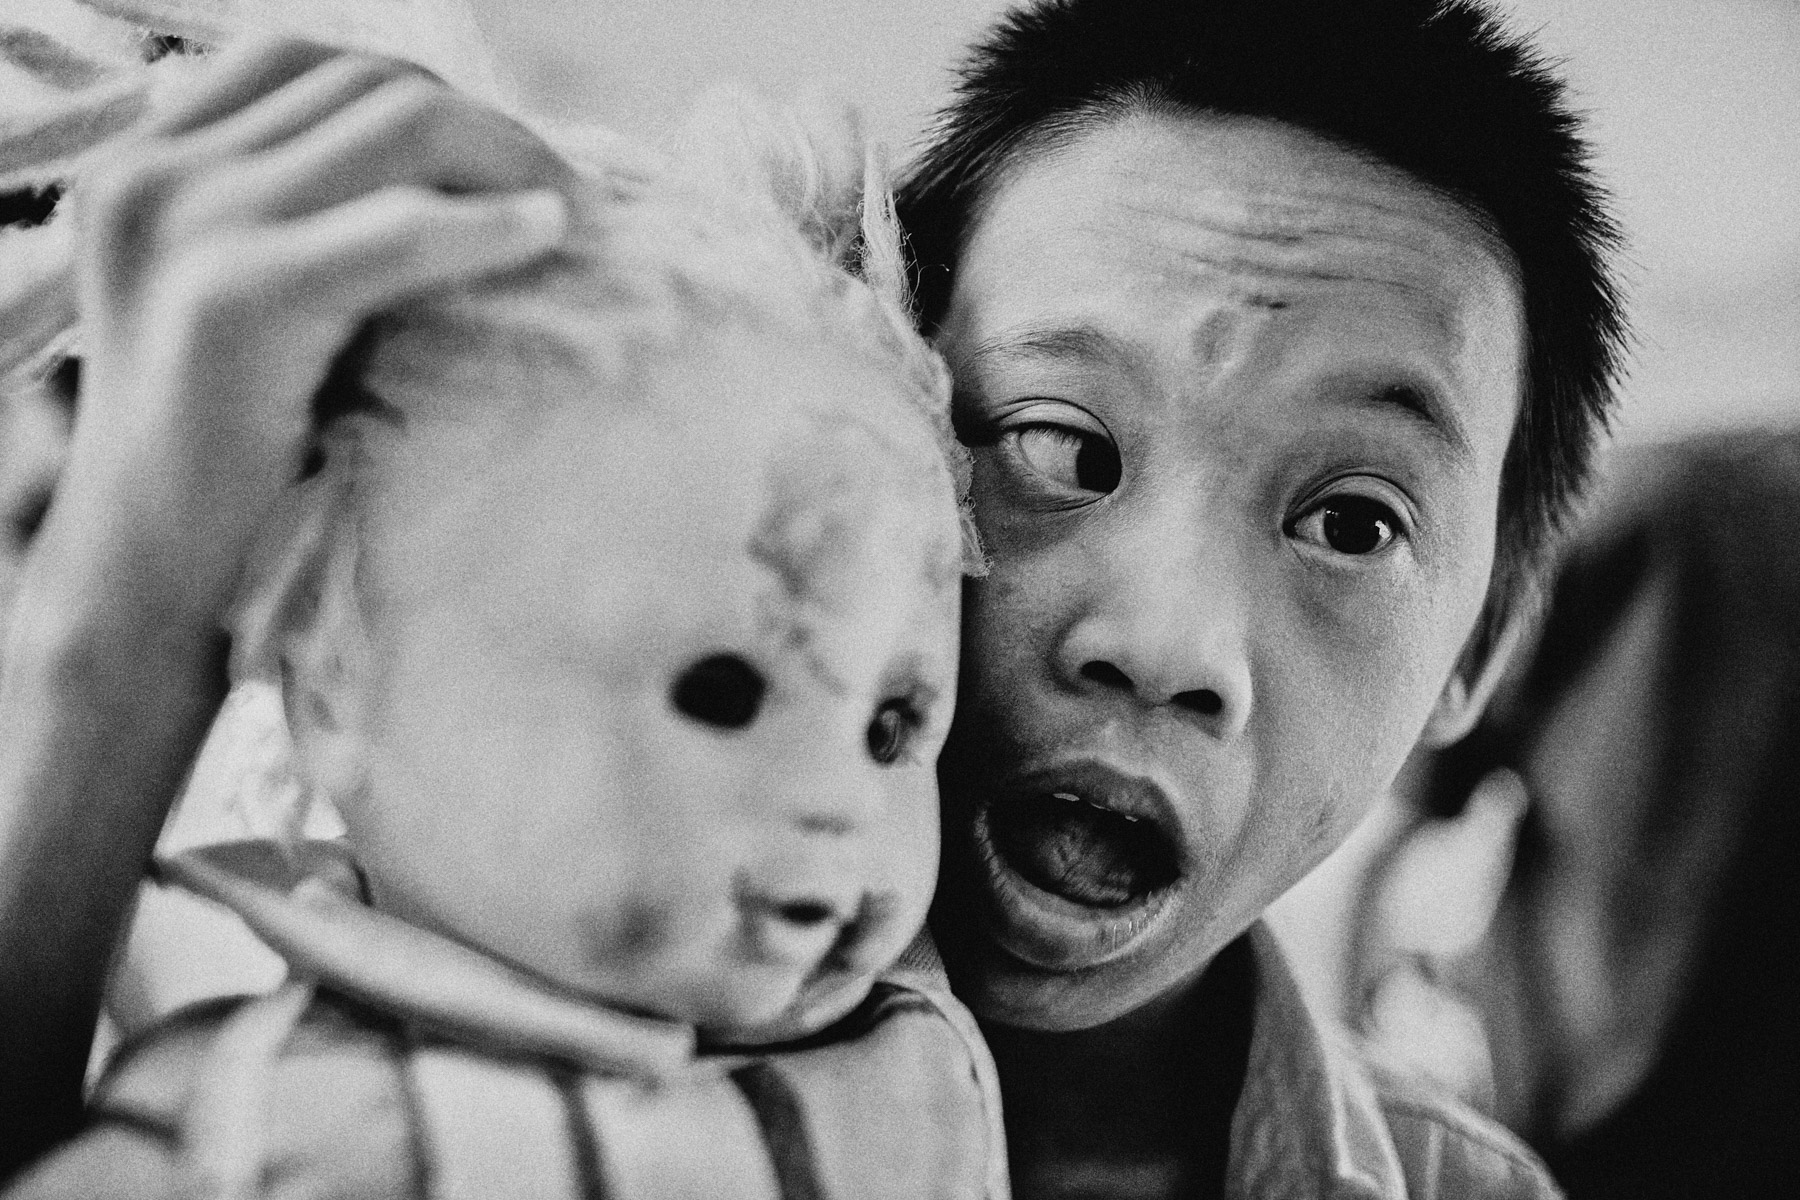 A young child suffering from the lasting effects of the Agent Orange defoliant used to decimate jungles and fields during the American-Vietnam War, in the Friendship Village on the outskirts of Hanoi.